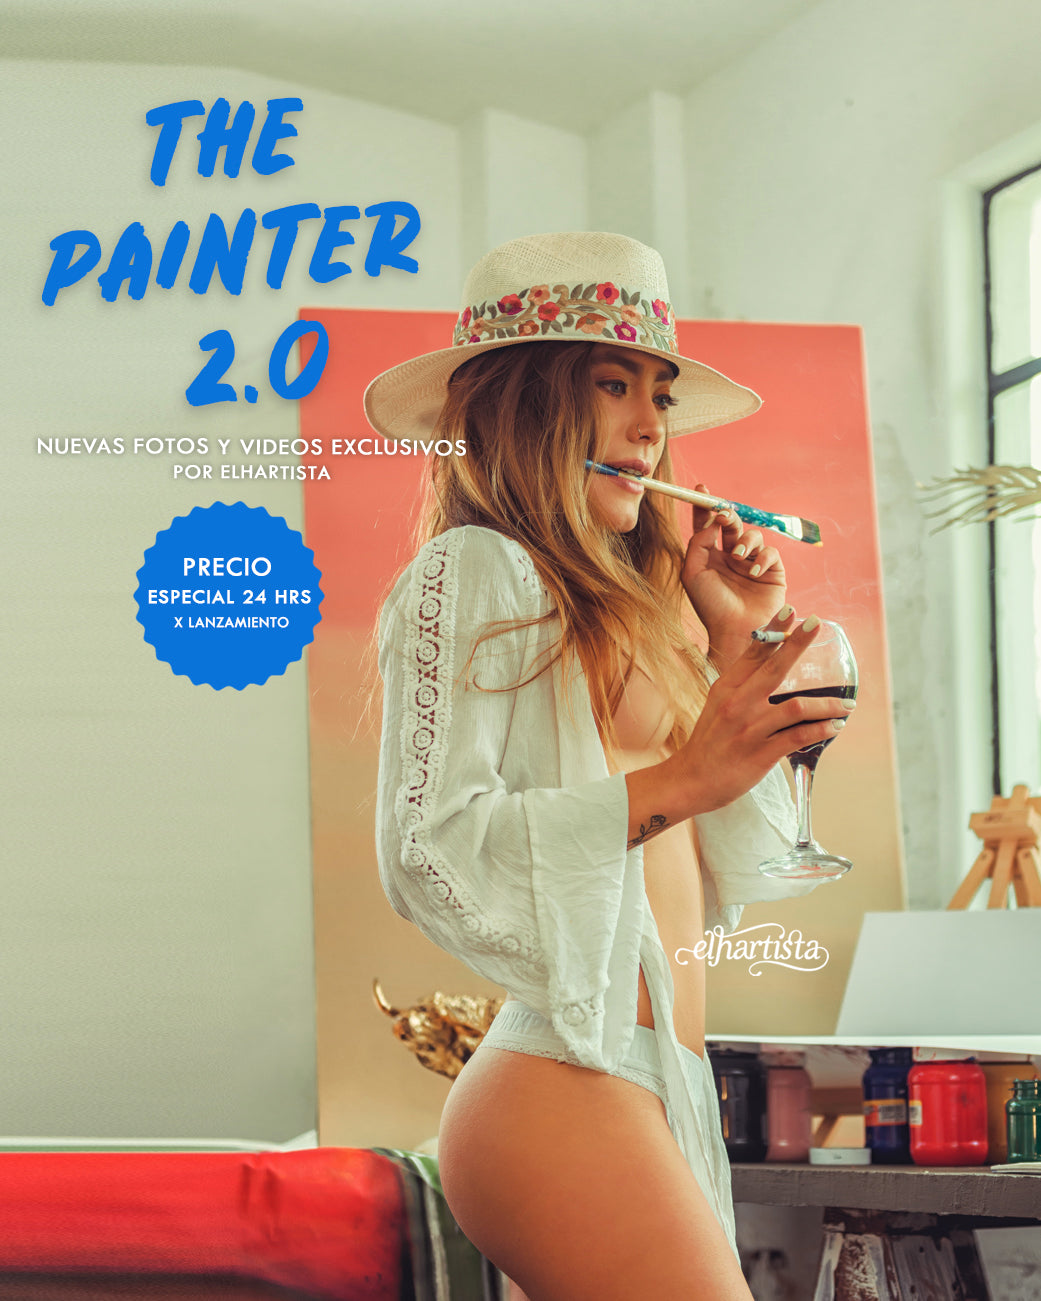 THE PAINTER 2.0